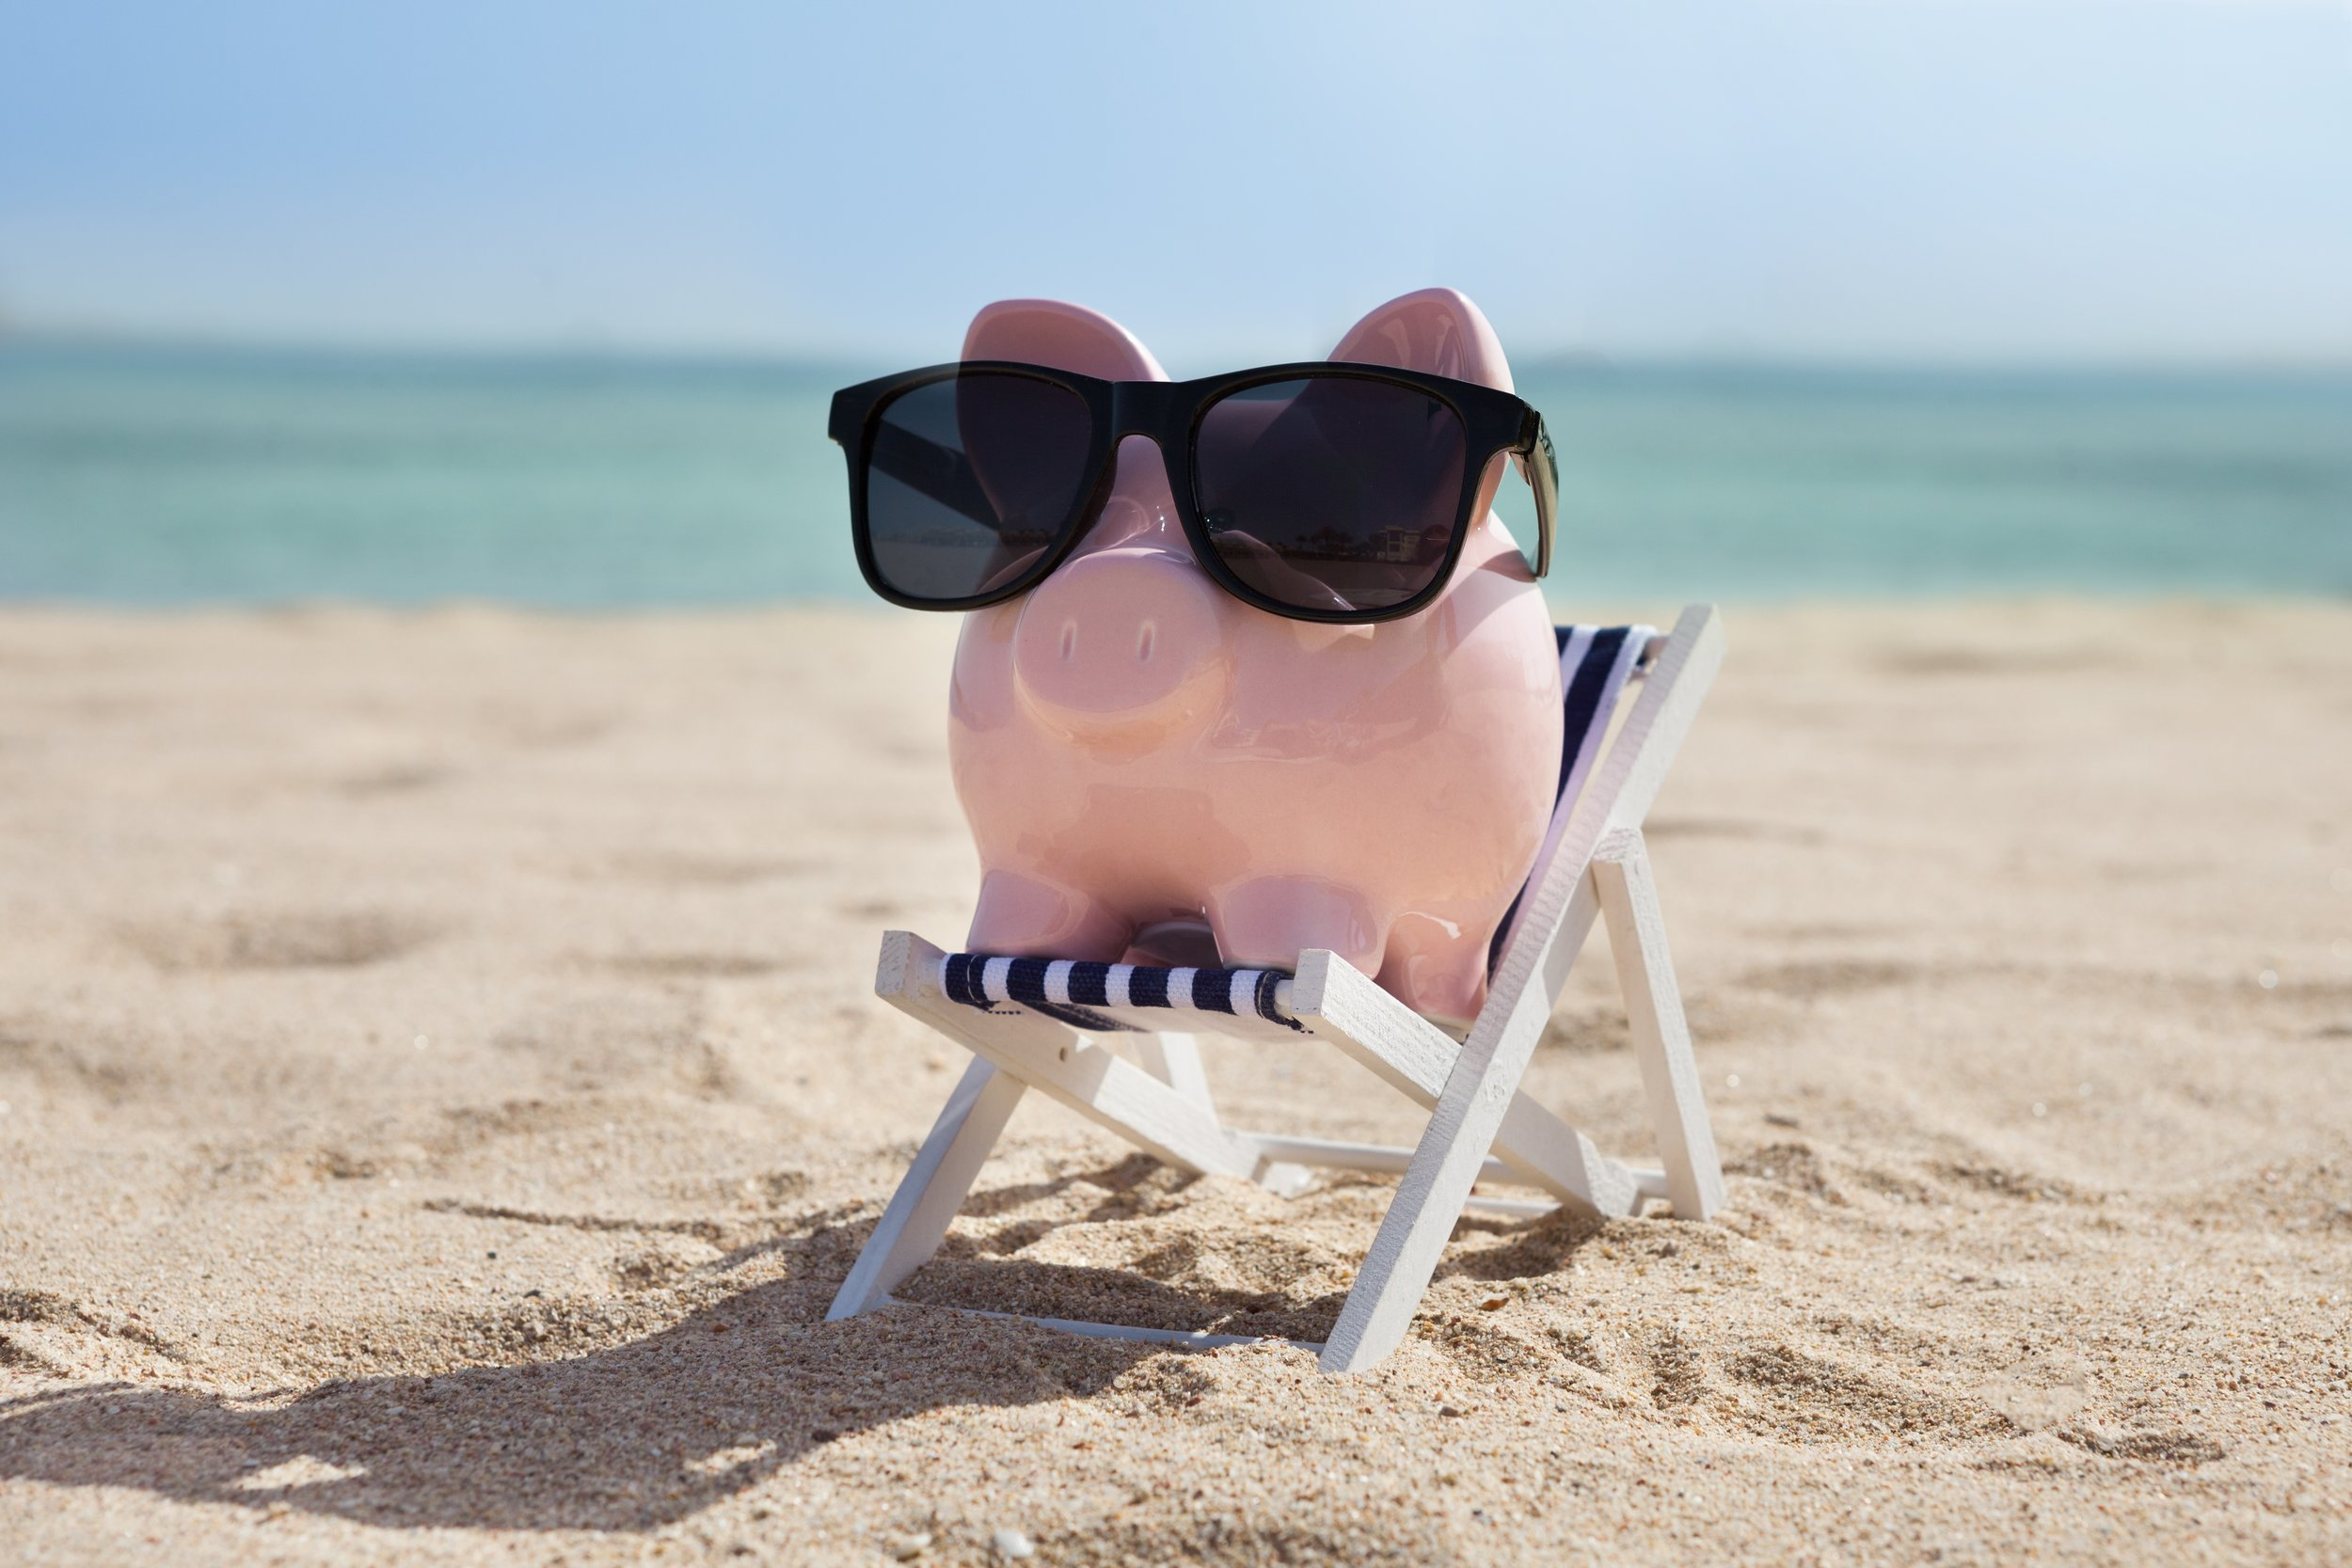 Piggy Bank With Sunglasses.jpg